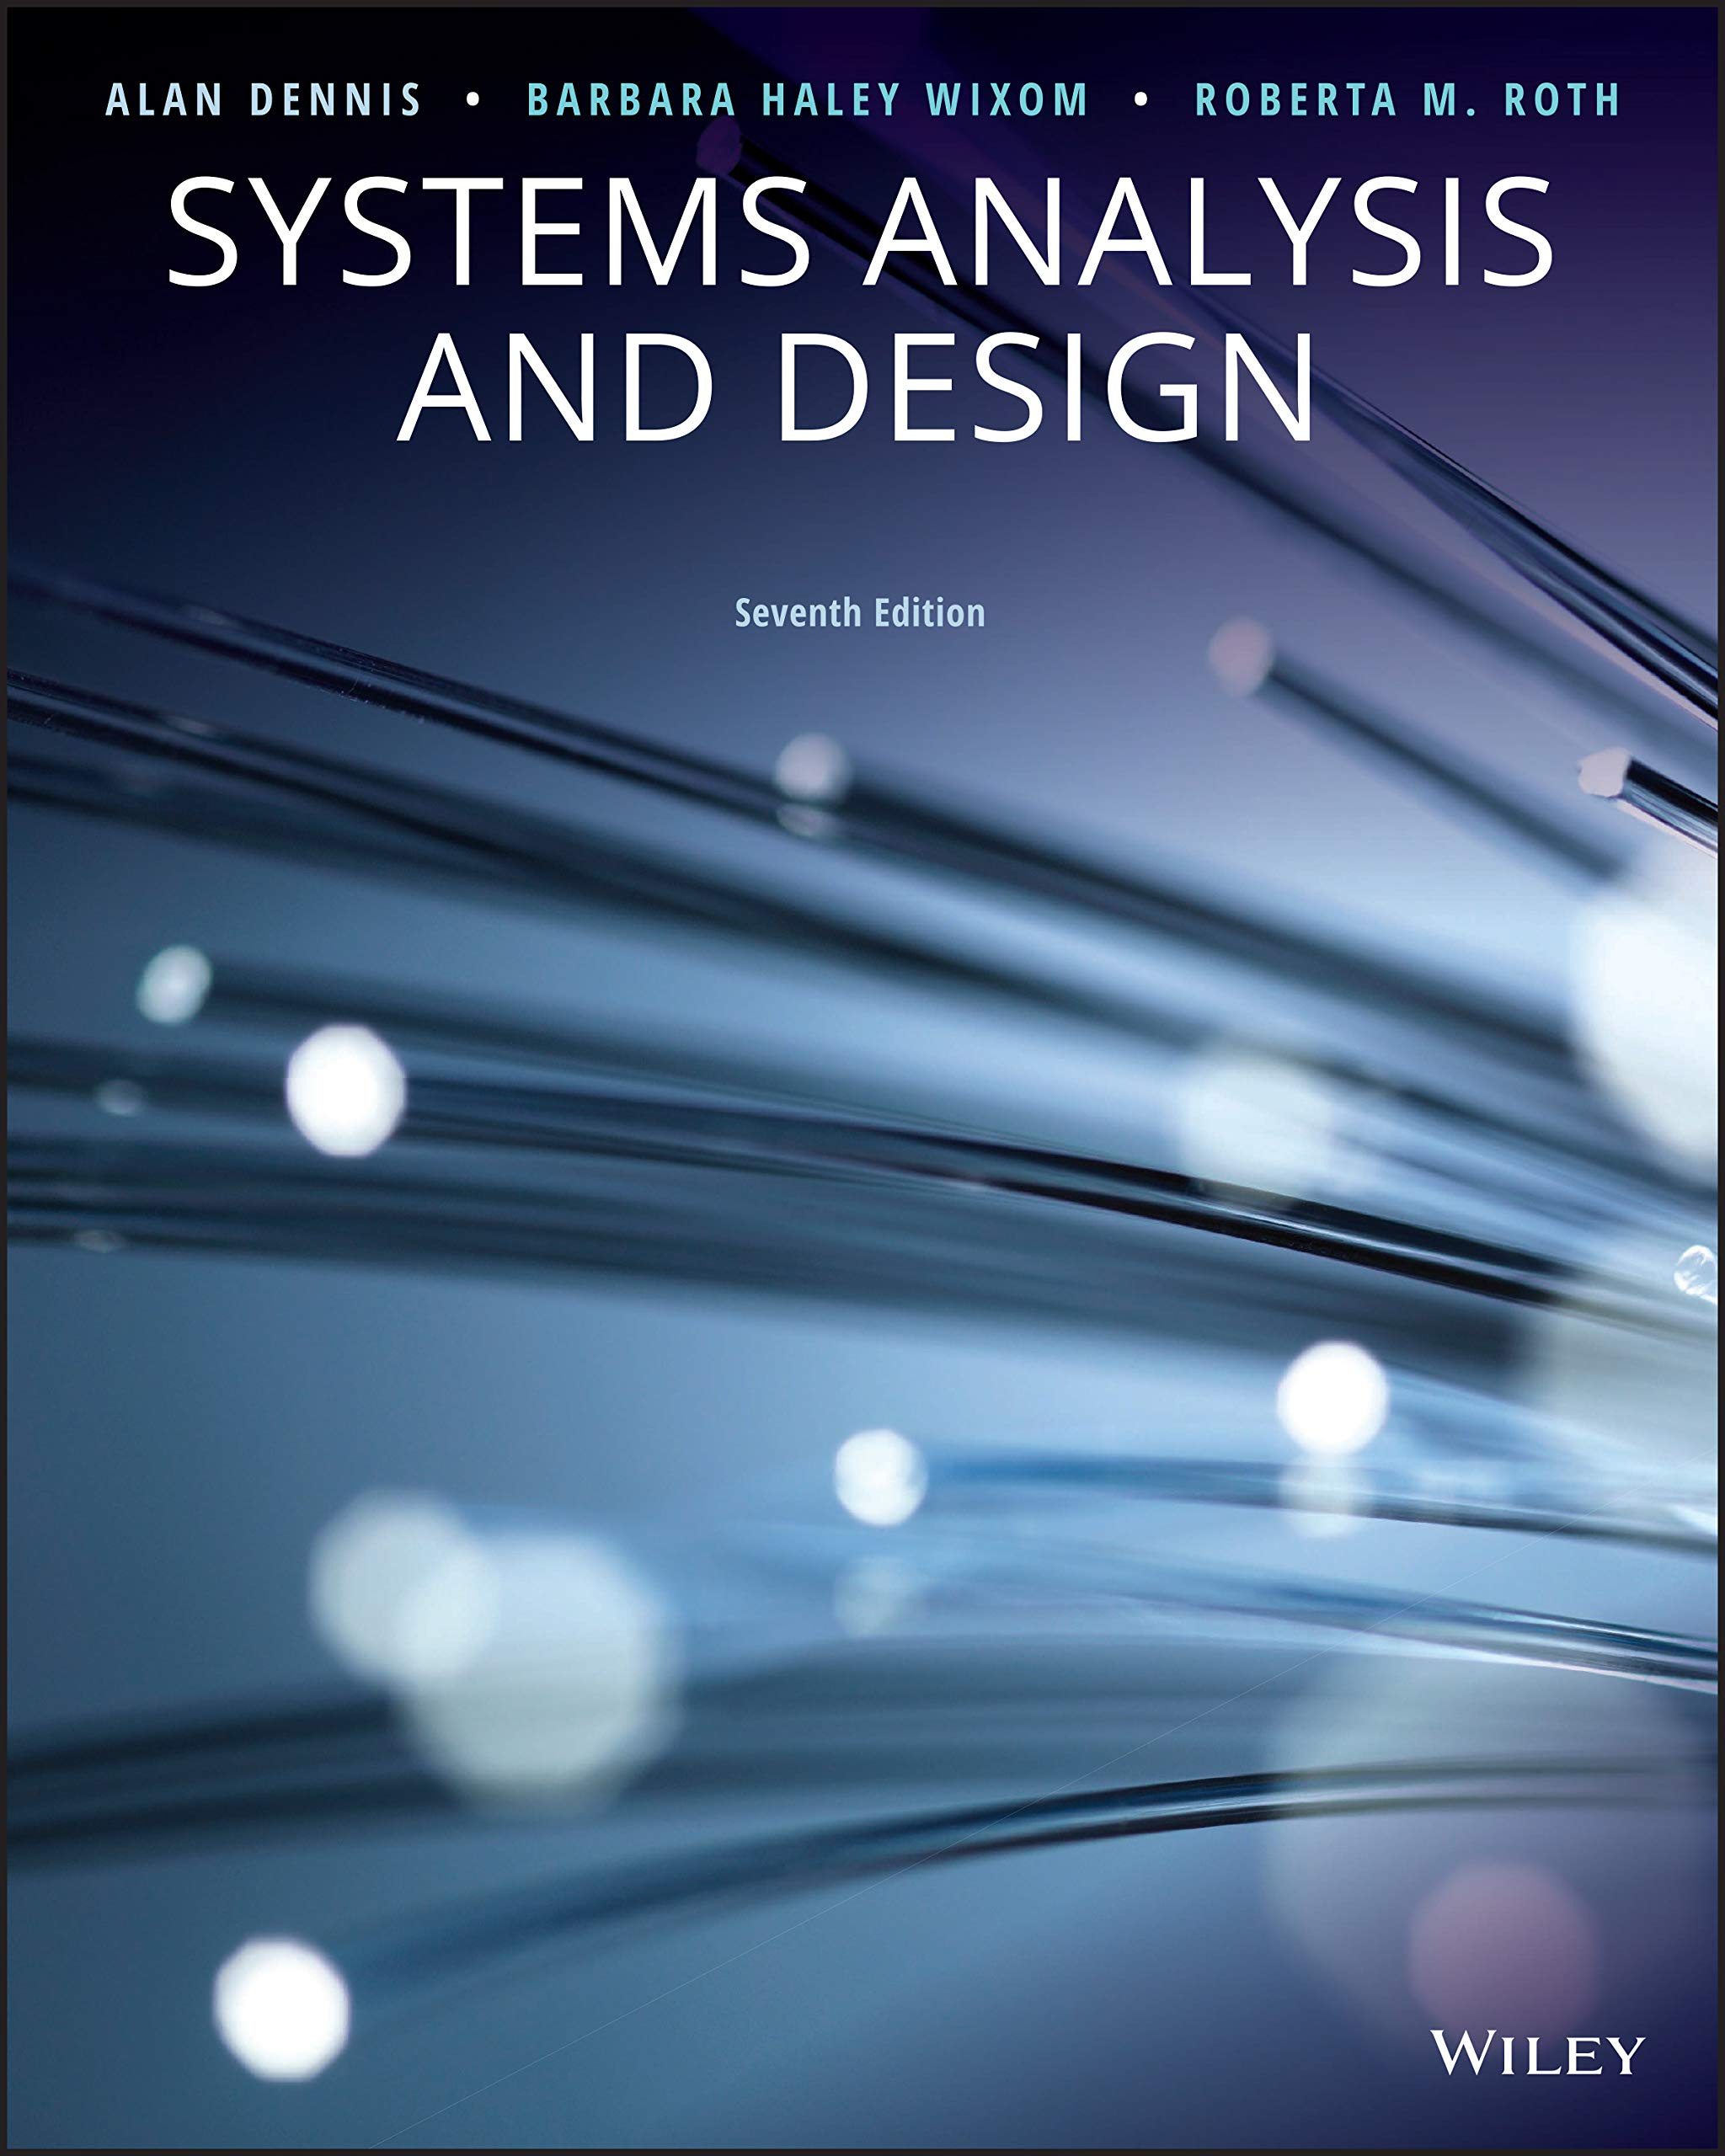 Systems Analysis And Design 7th Edition Alan Dennis Barbara Haley Wixom Roberta M Roth Ebook Amazon Com